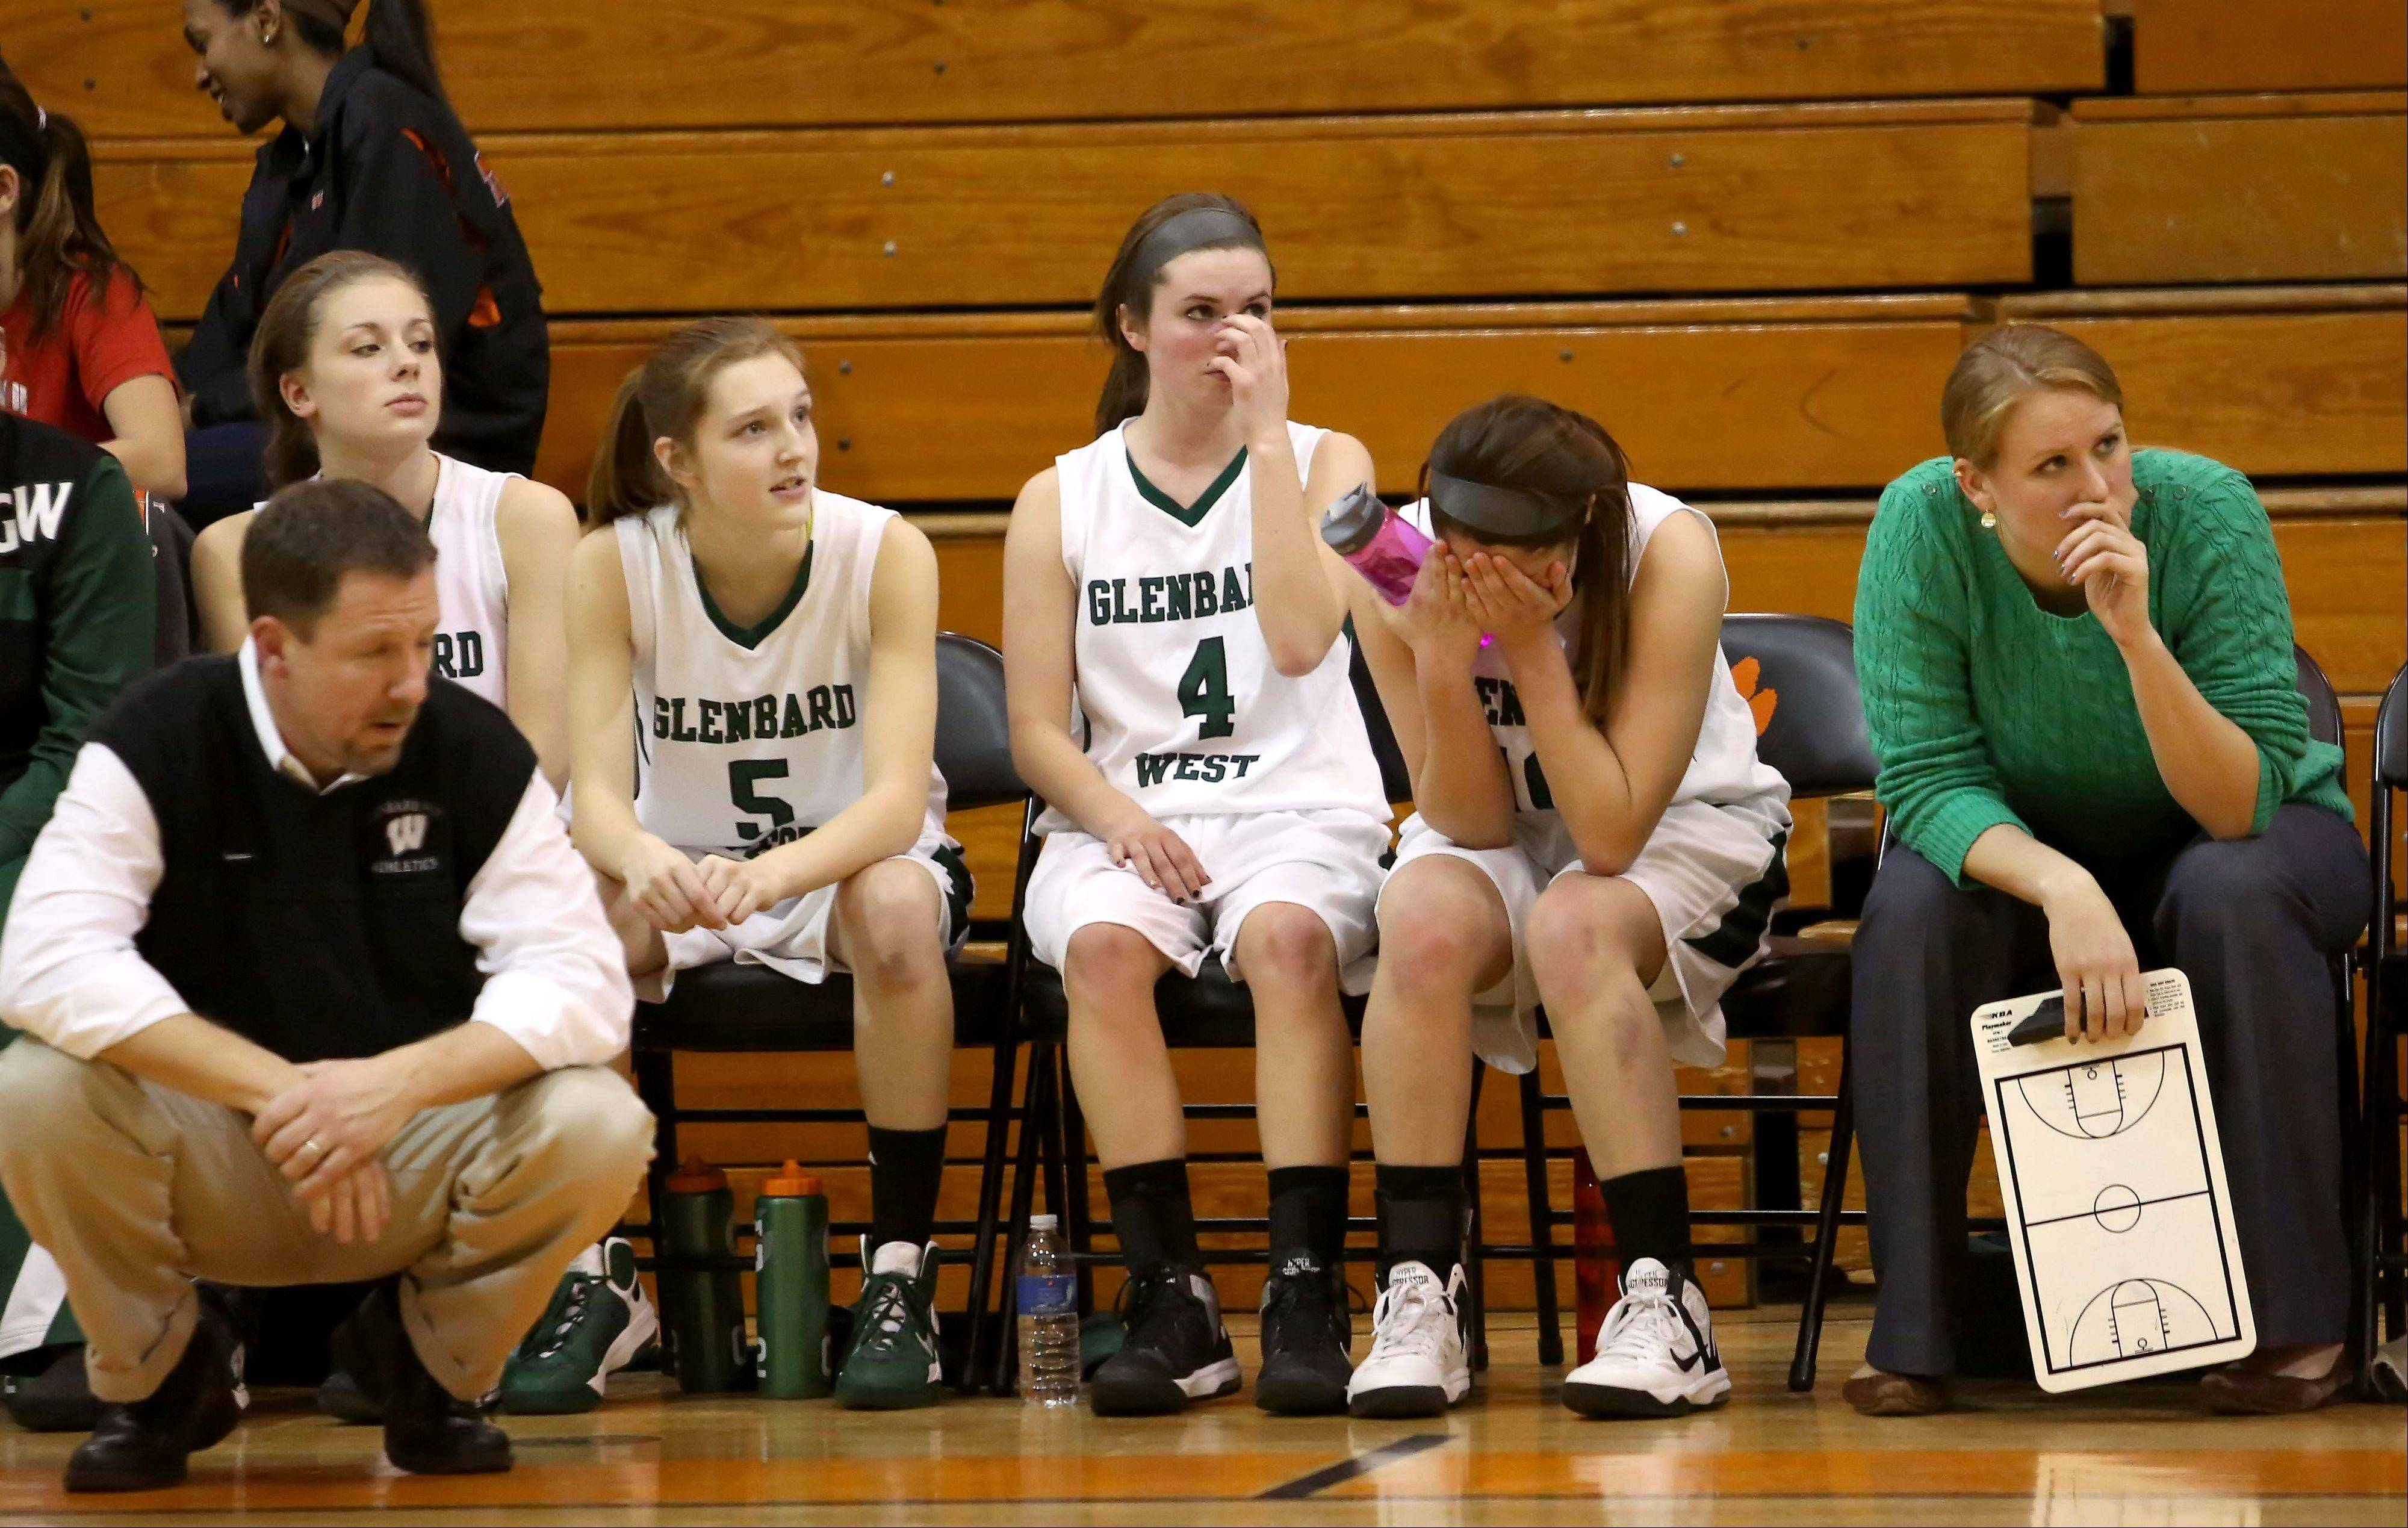 The Glenbard West bench reacts in the final seconds to their loss to St. Charles North during Class 4A regional quarterfinals at Wheaton Warrenville South on Monday.